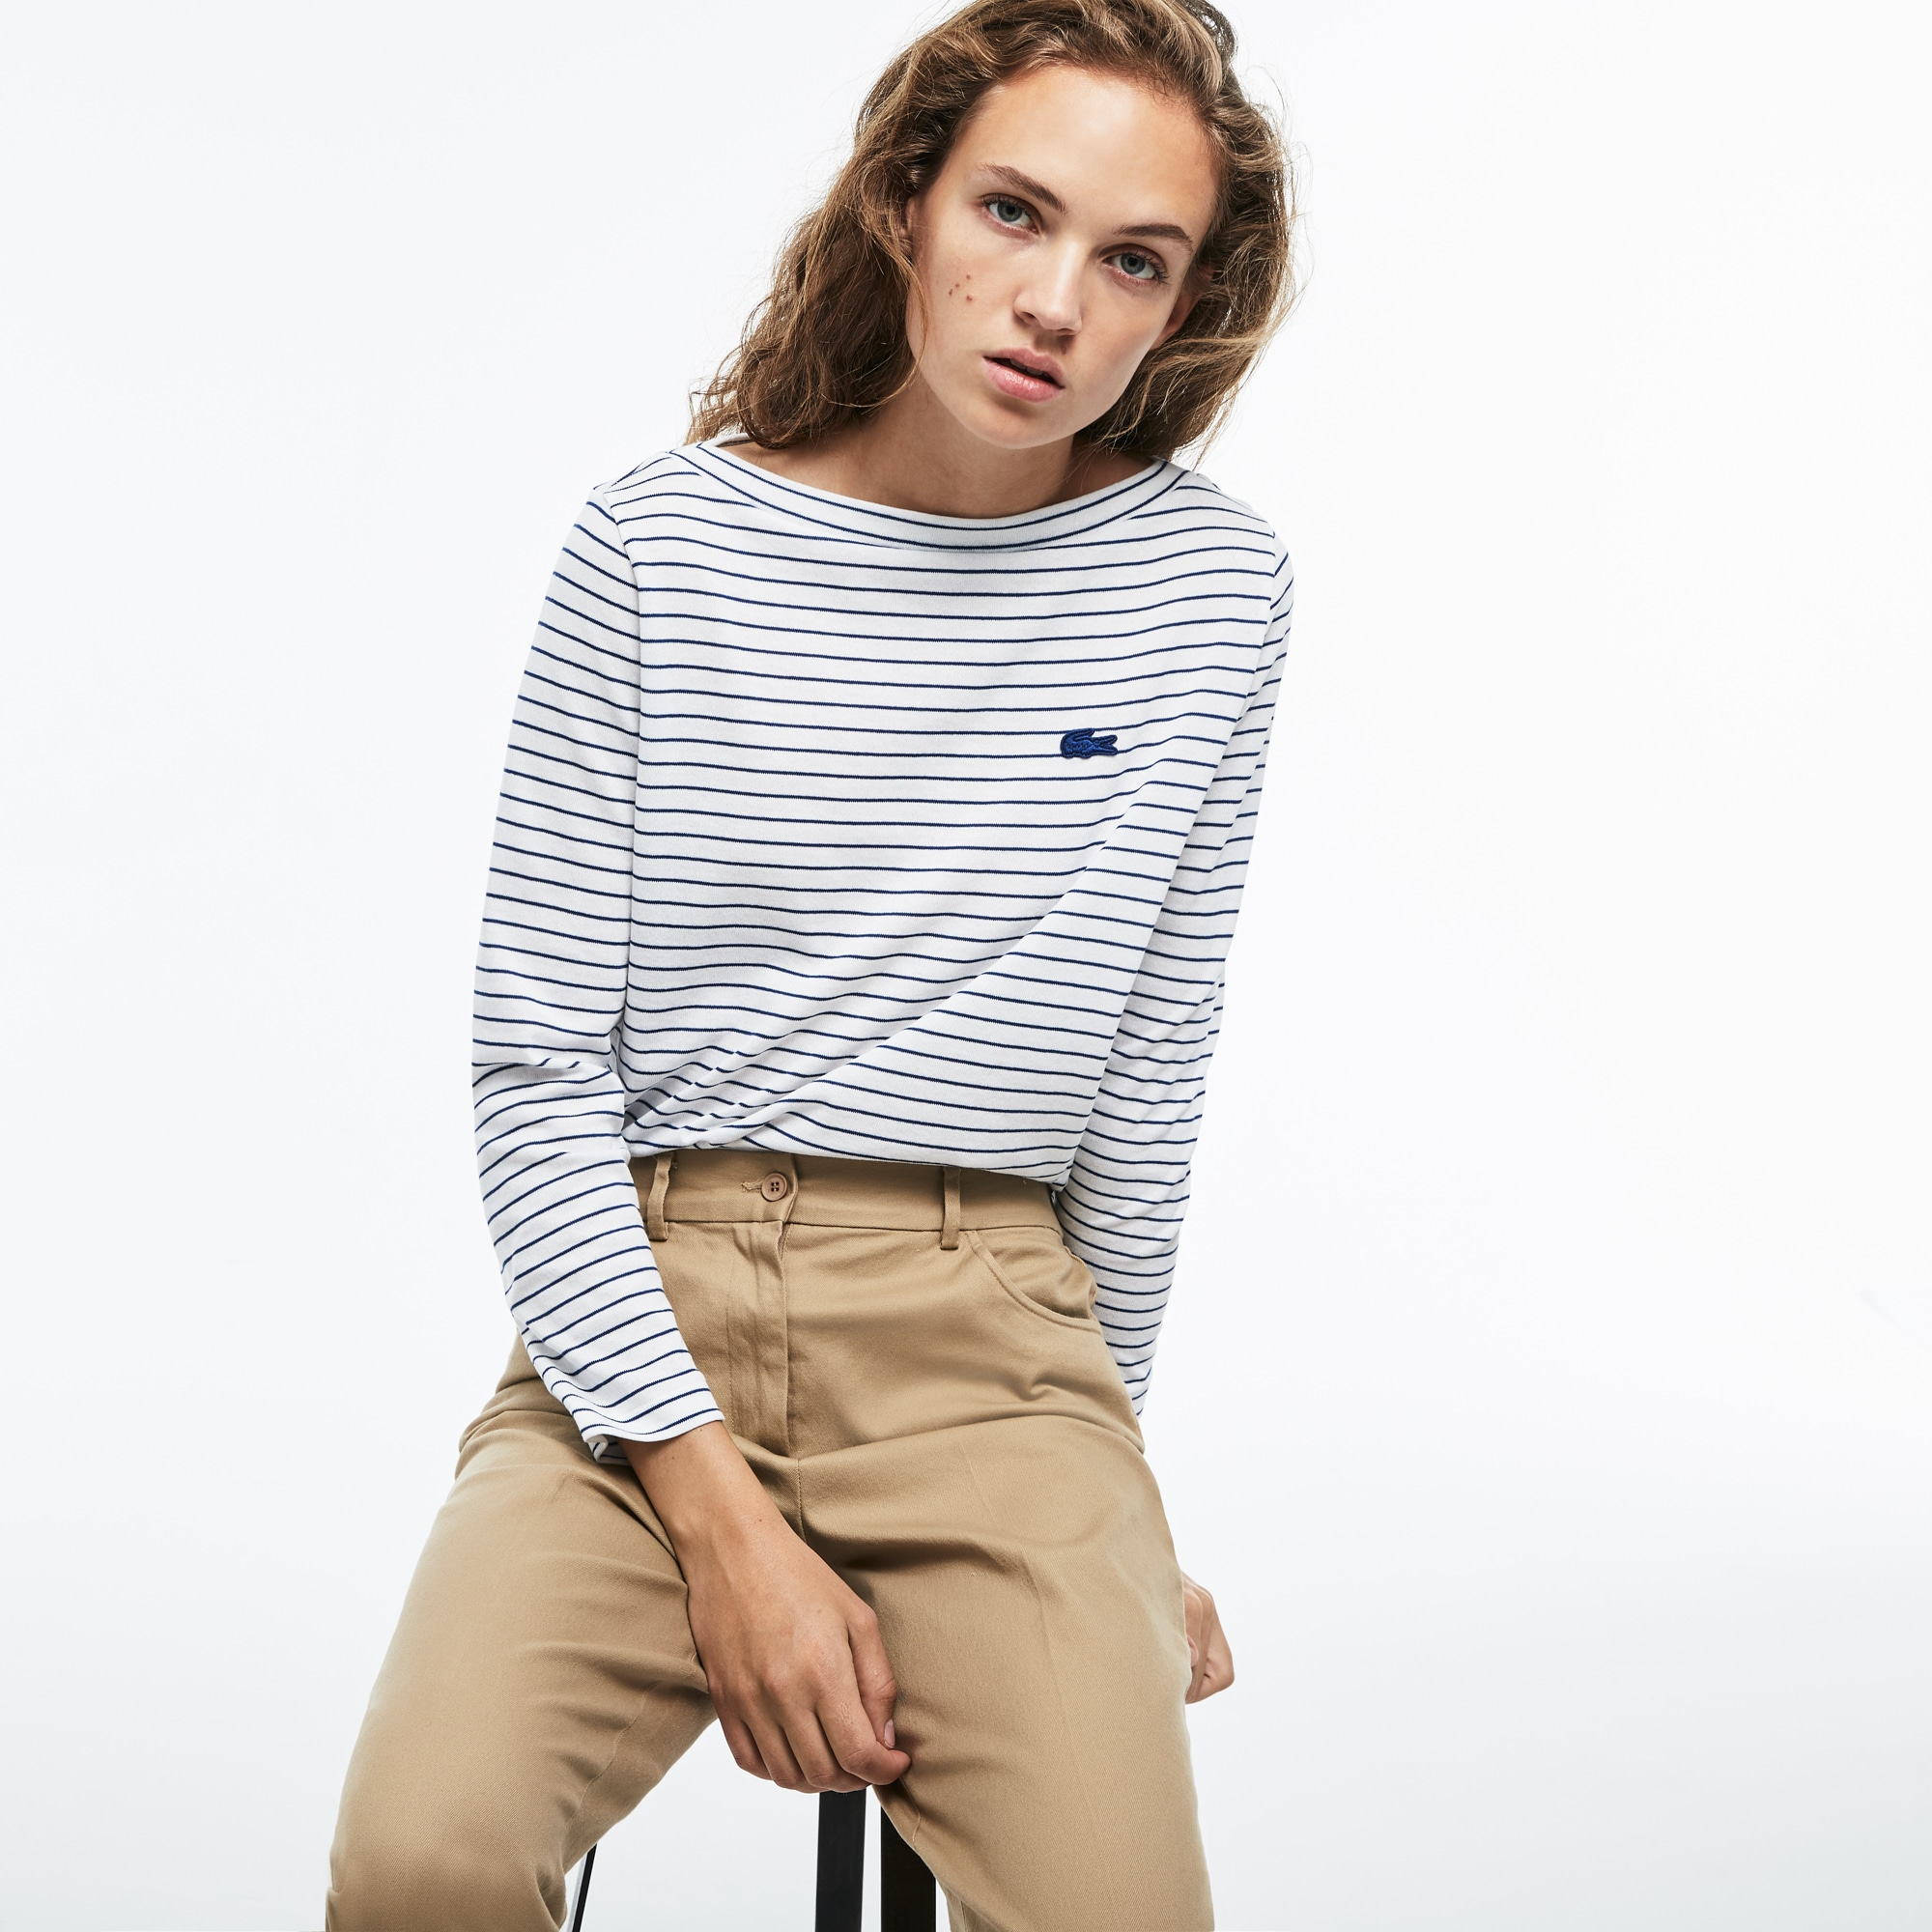 Women's Boat Neck Striped Cotton Nautical Shirt